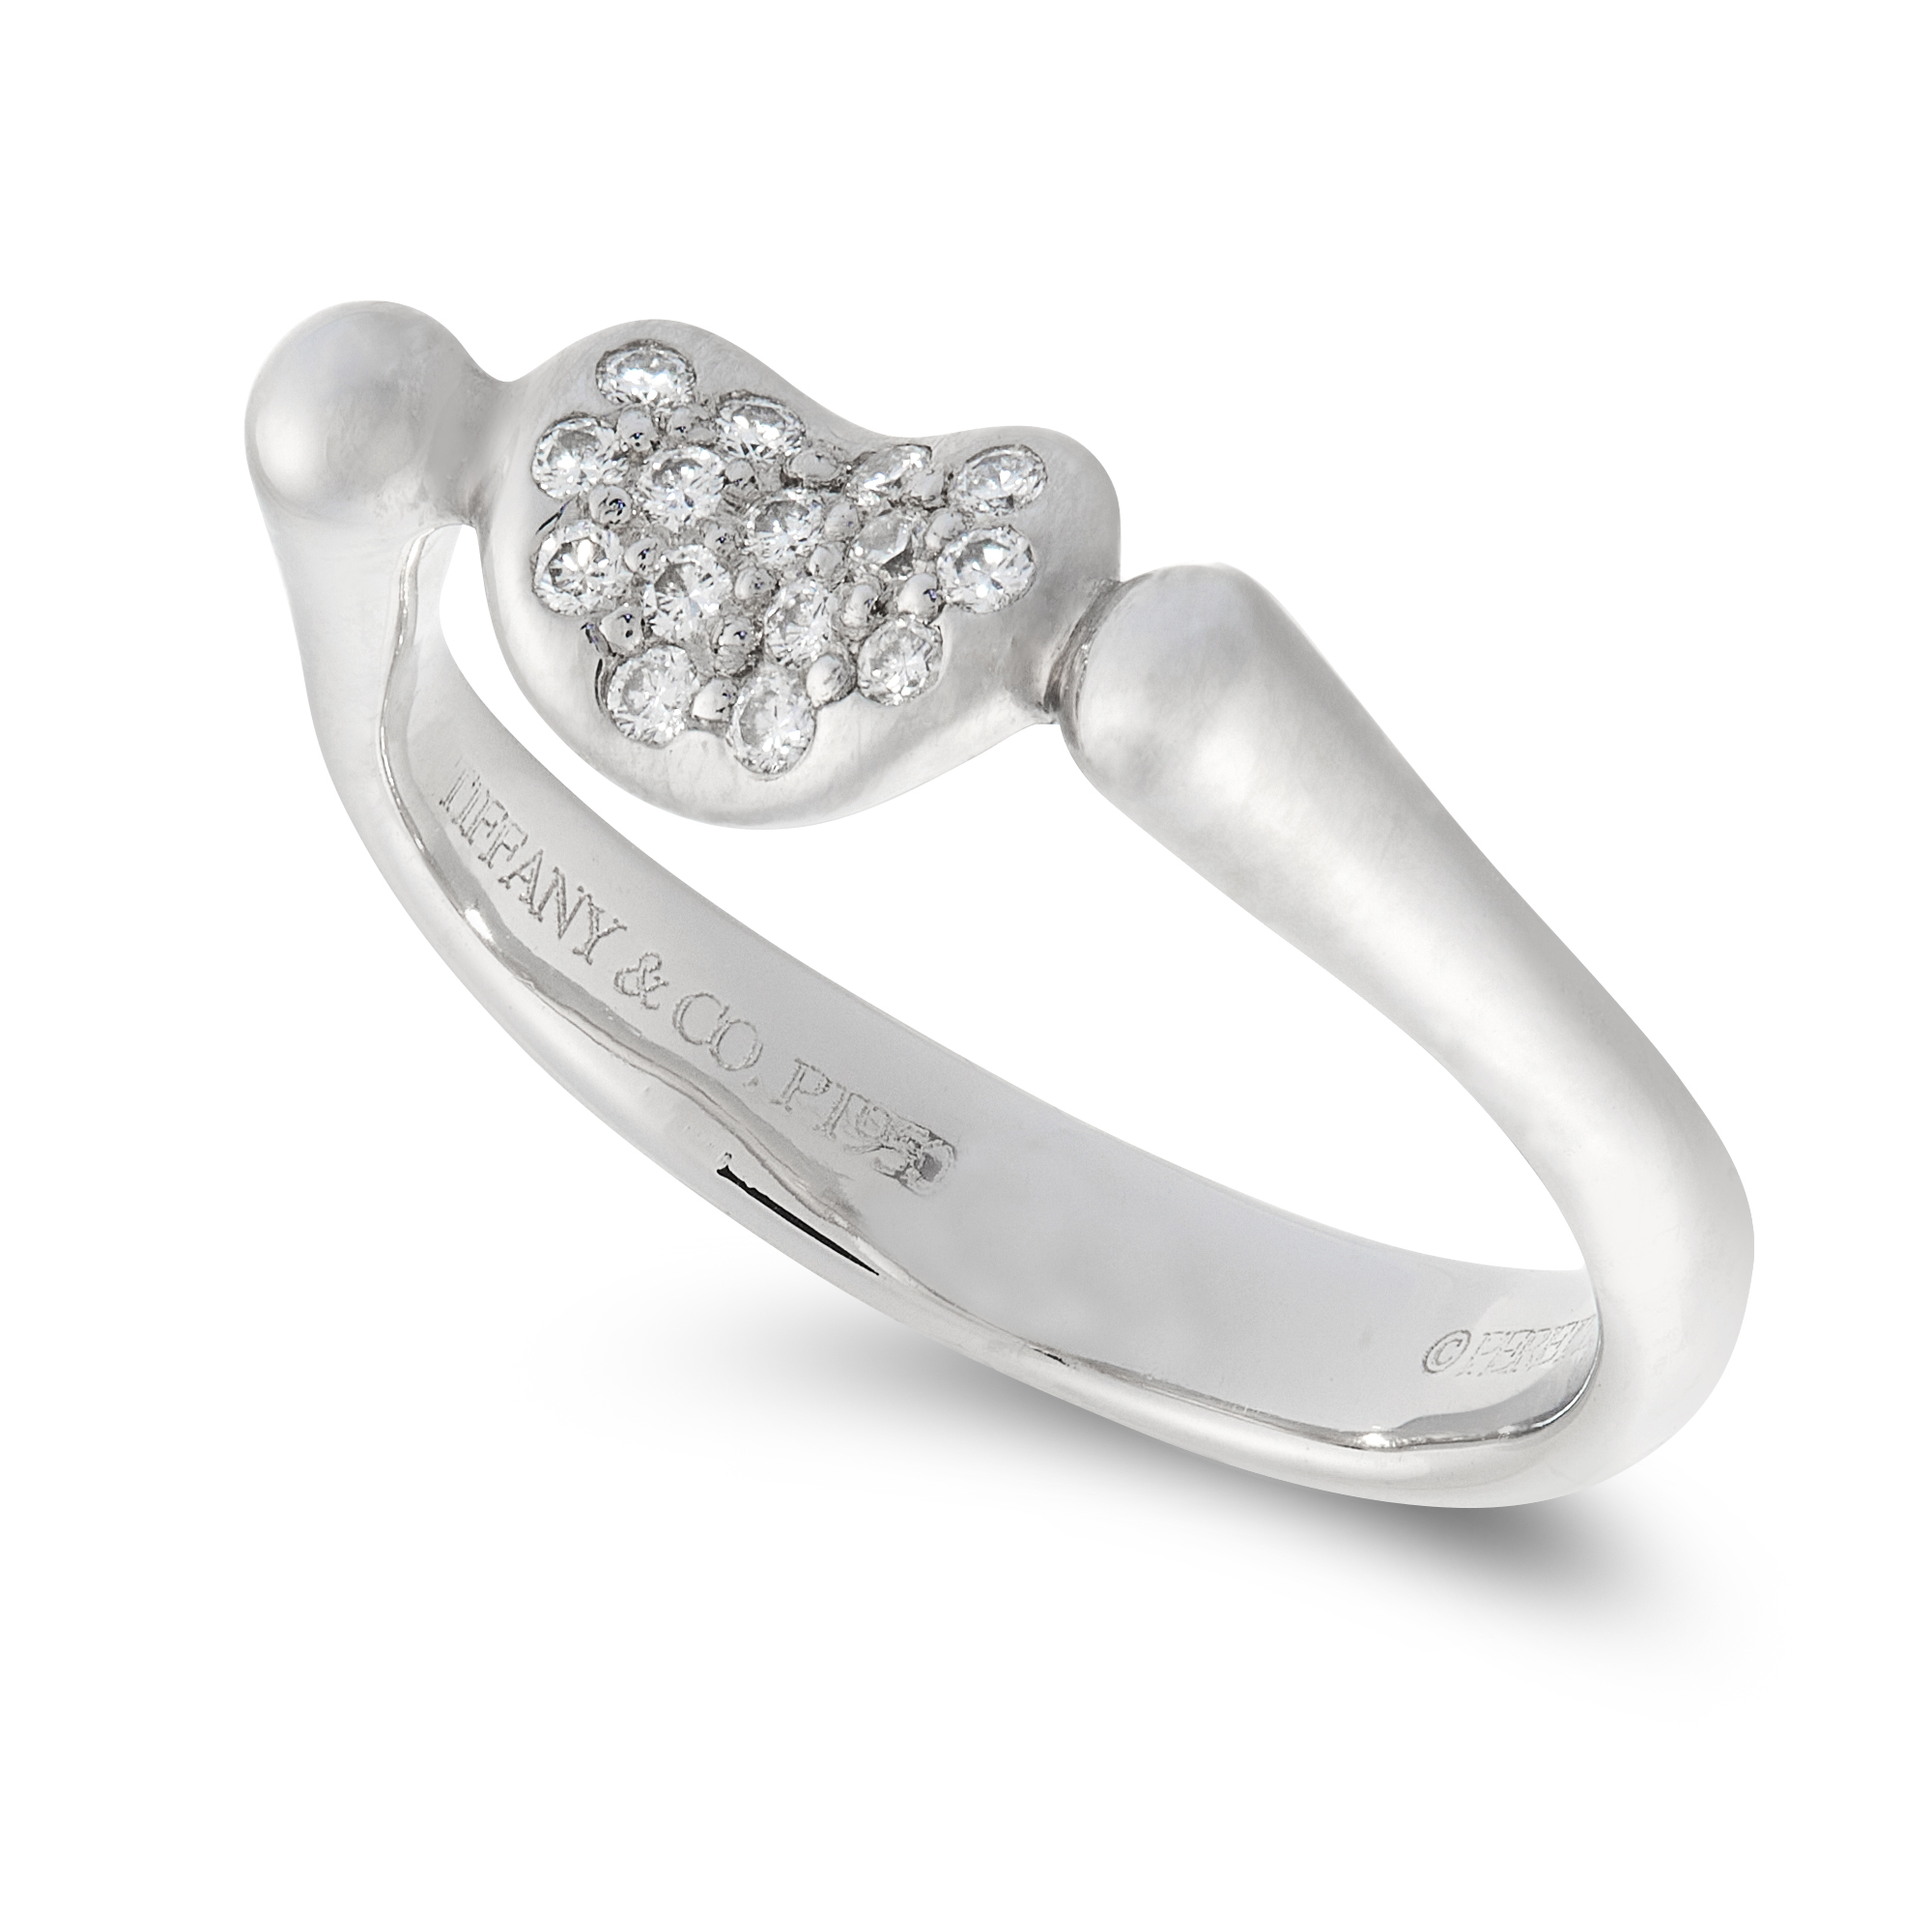 A DIAMOND BEAN RING, ELSA PERETTI FOR TIFFANY & CO in platinum, the central bean motif set with